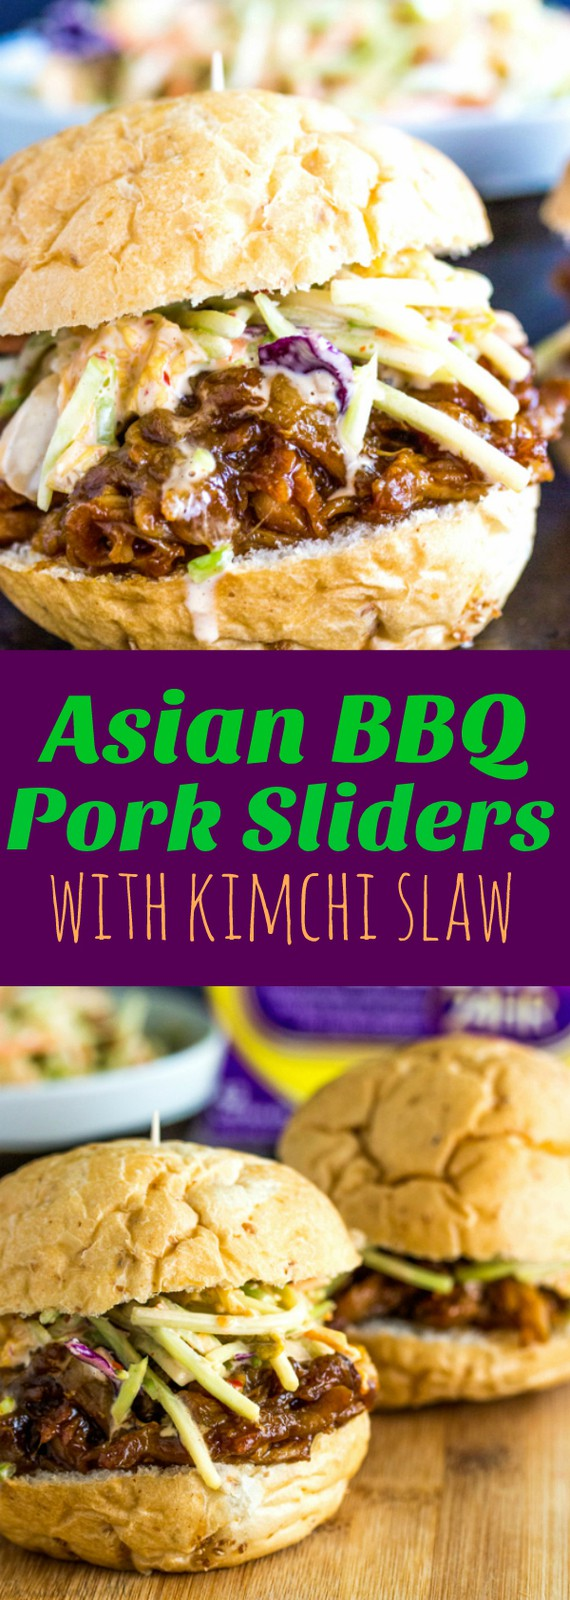 Slow Cooker Asian BBQ Pork Slides wih Kimchi Slaw